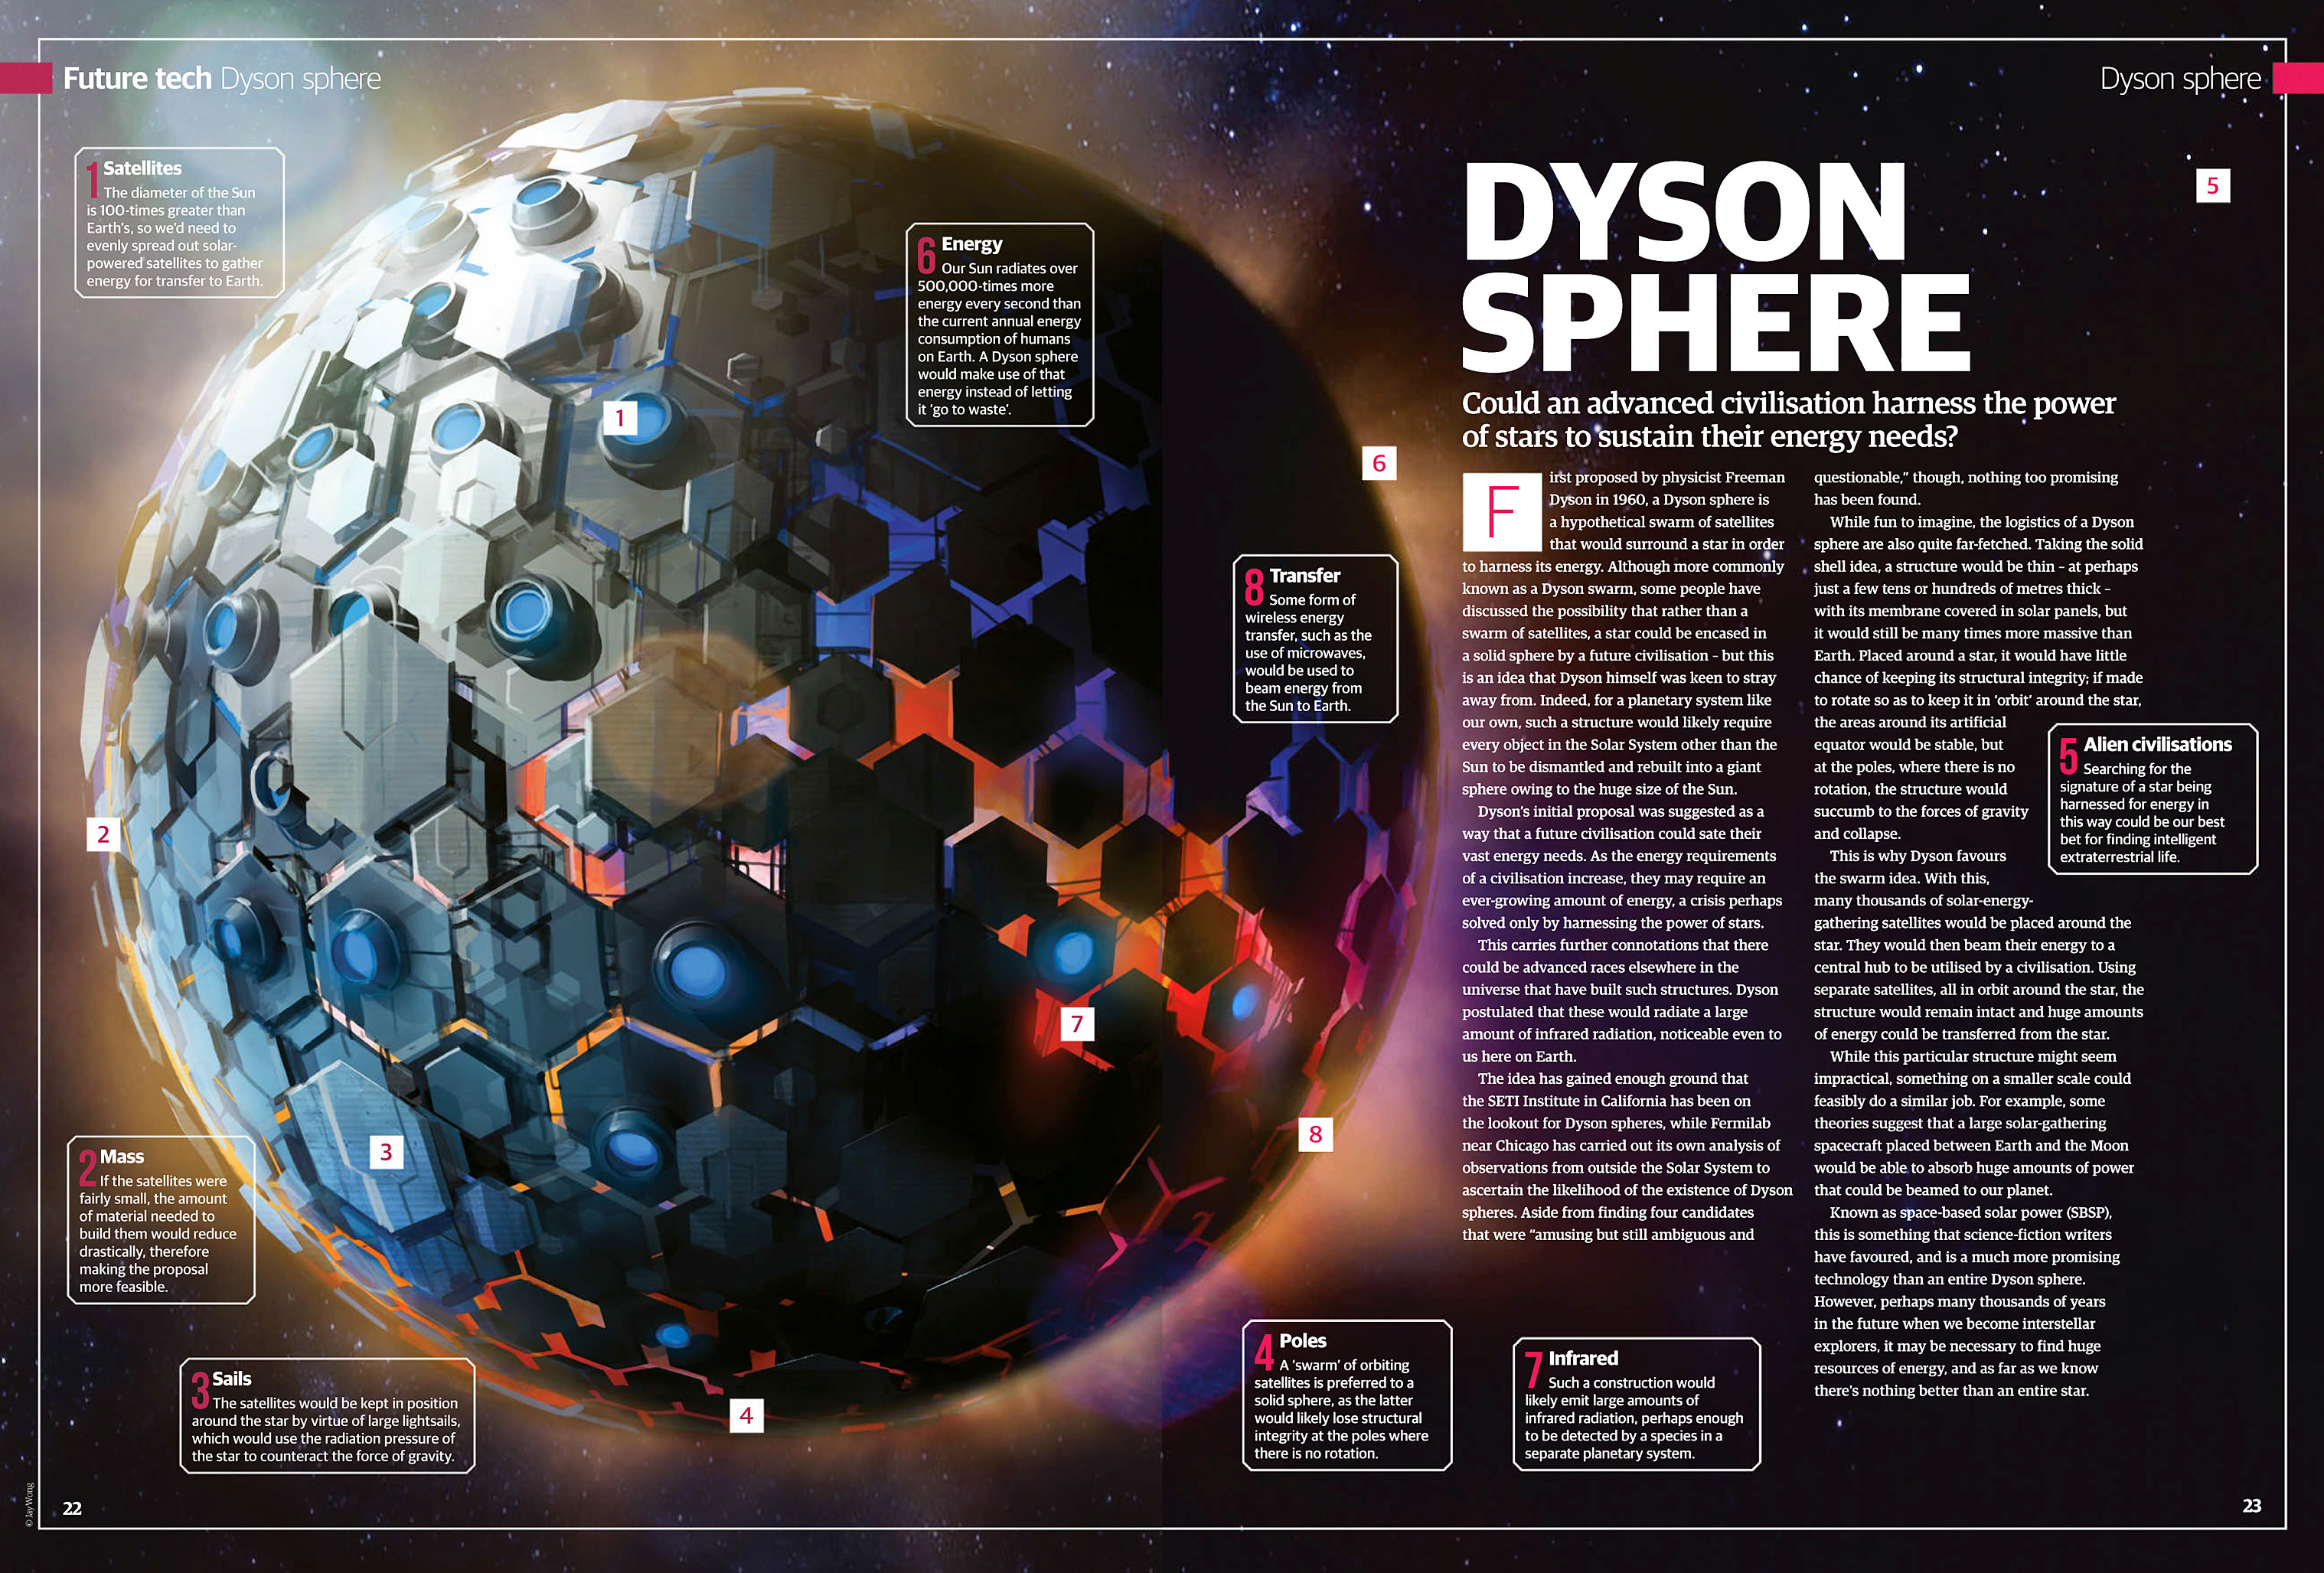 All About Space 109 2020 Dyson Sphere.jpg